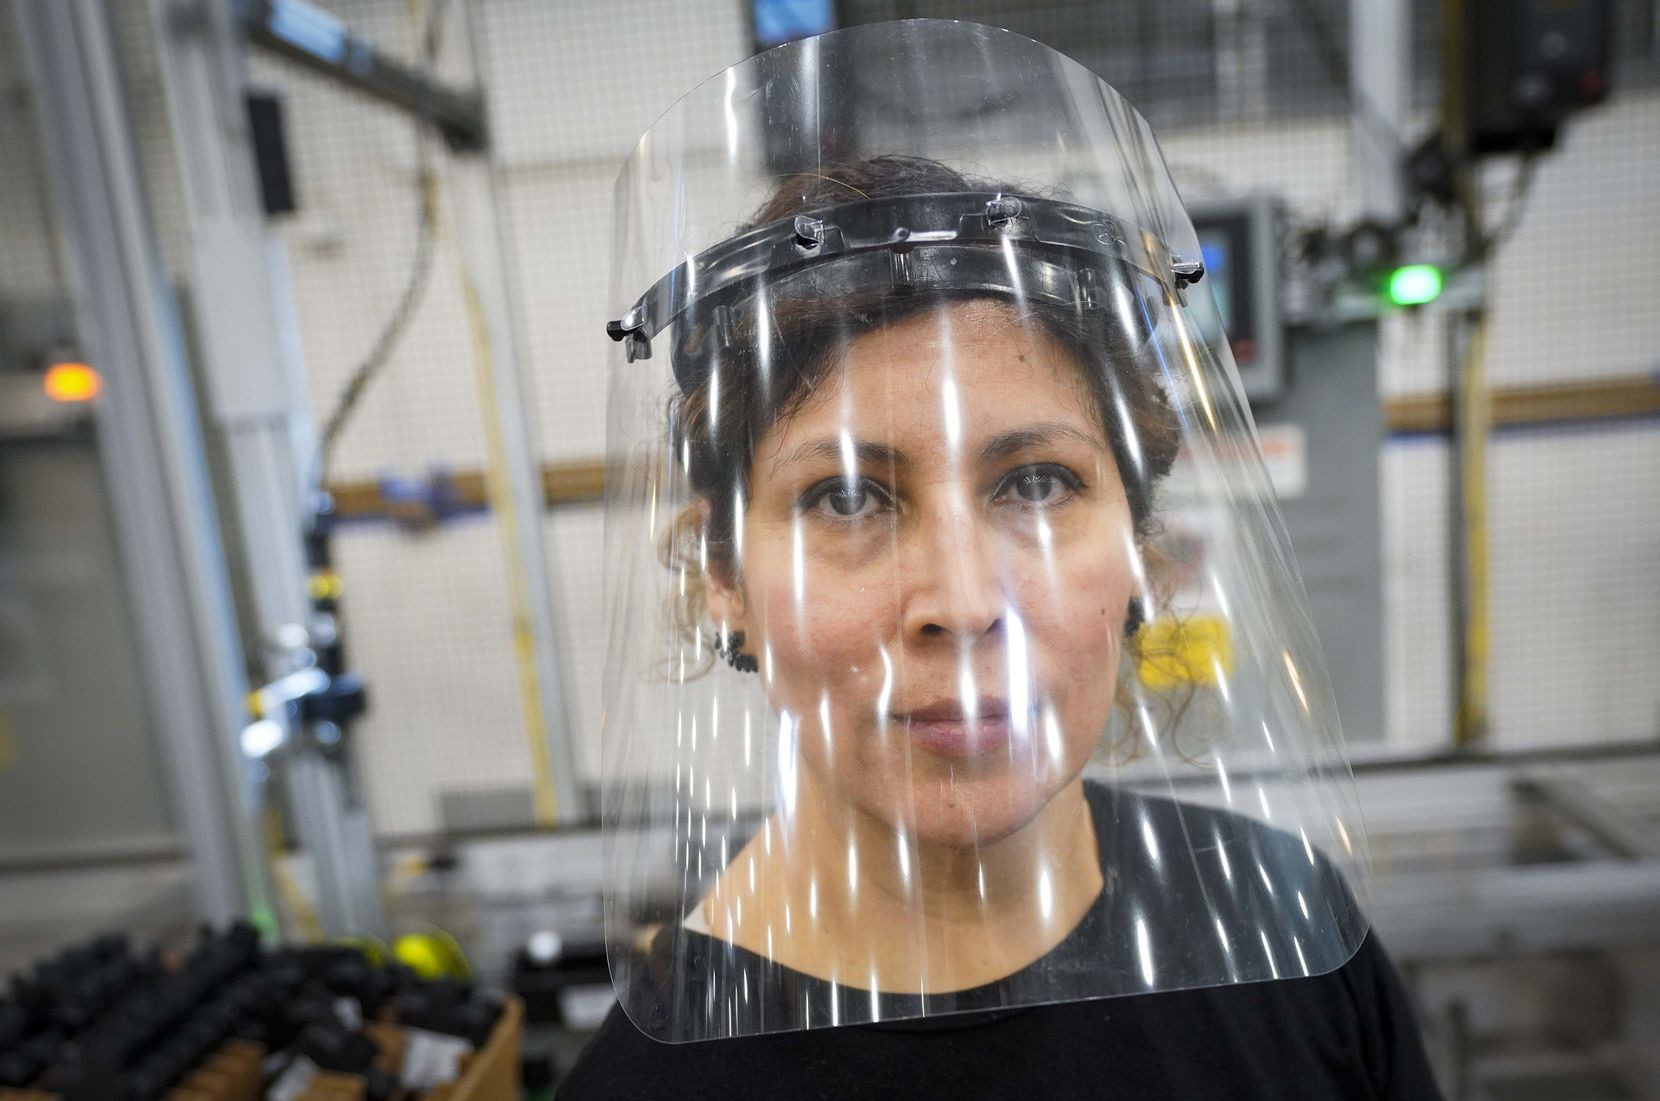 Face coverings are not required for everyone at Flex-N-Gate, but about half the workers wear masks or face shields, including Blanca Ortega, seen on the production line at the Grand Prairie factory.